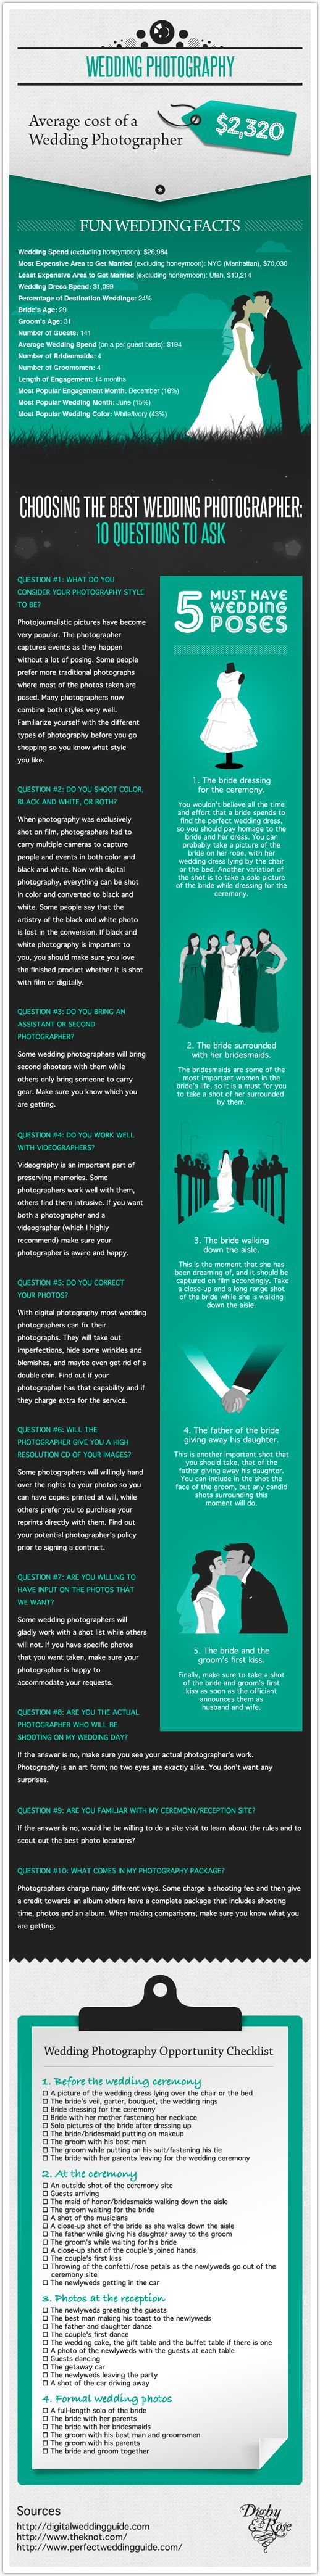 Not exactly sure how much you should spend on photography or what to ask when deciding which photographer to book? Here's a useful checklist from Digby & Rose.